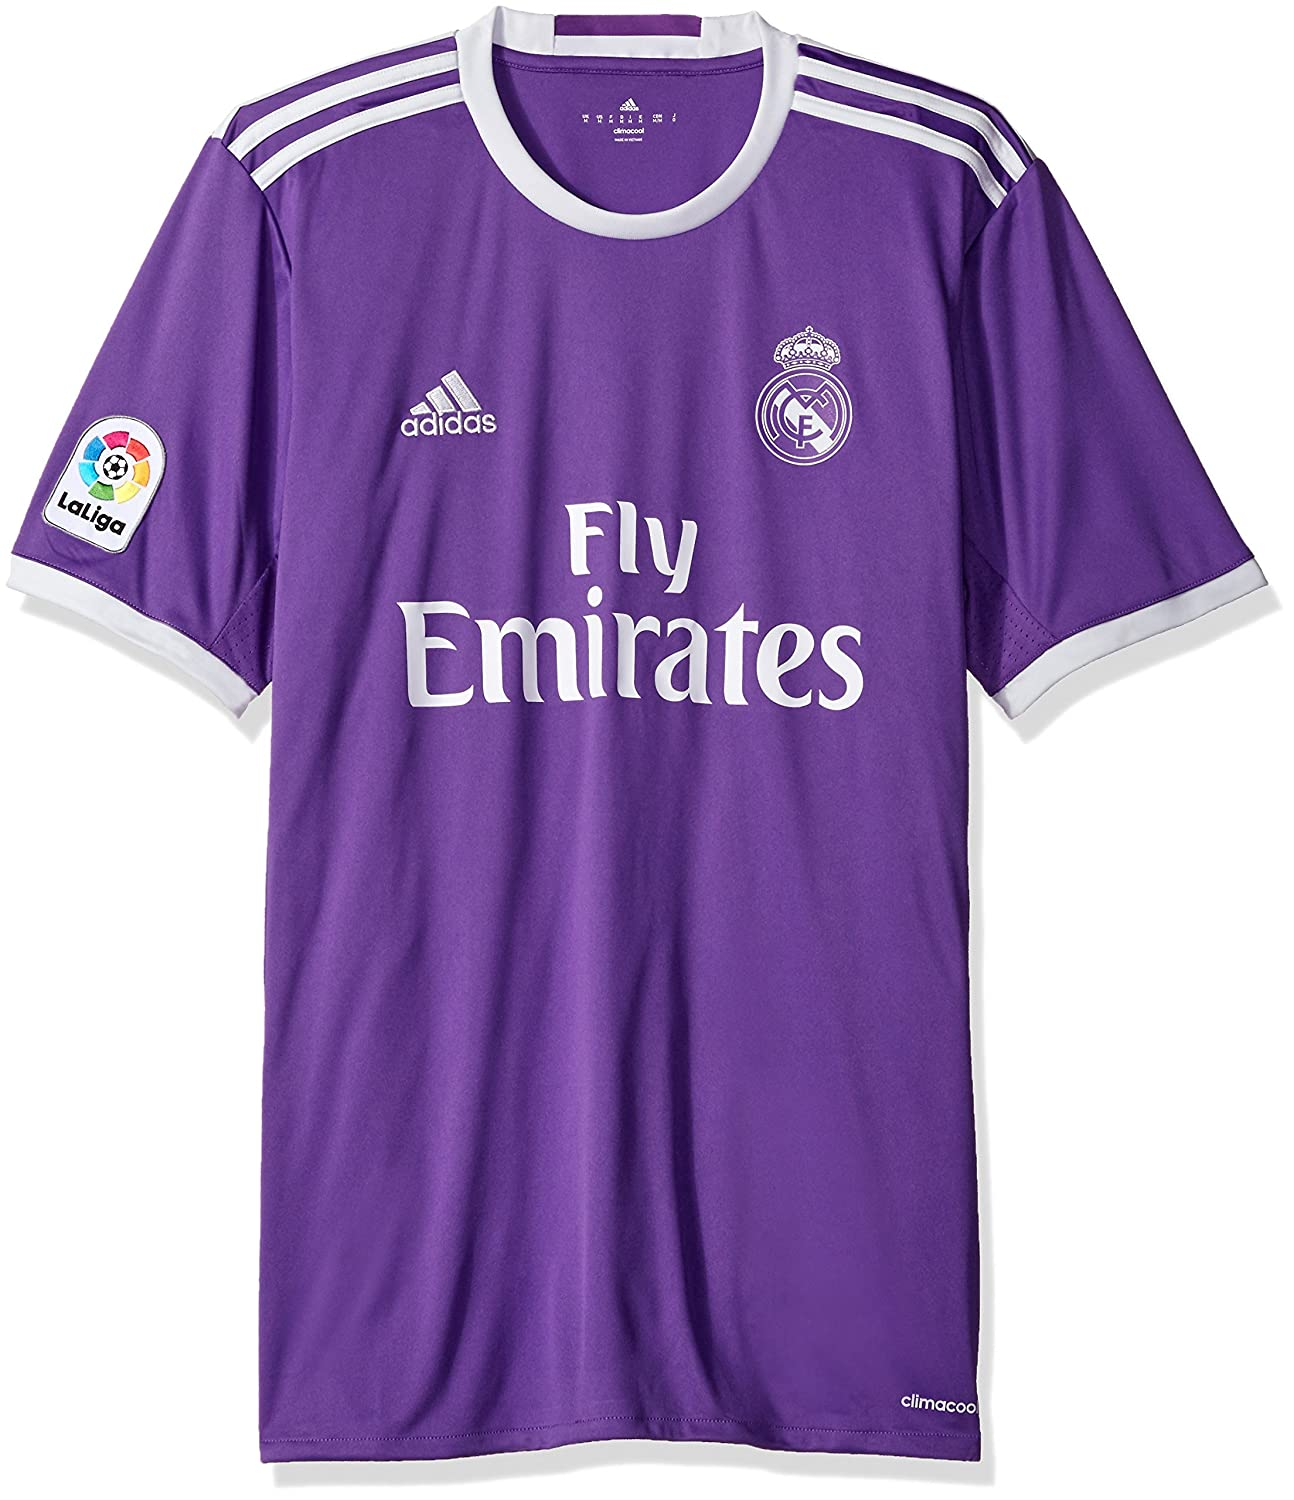 1f8d26ce454 Amazon.com   adidas Men s Real Madrid 16 17 Away Ray Purple Crystal White  Jersey   Sports   Outdoors